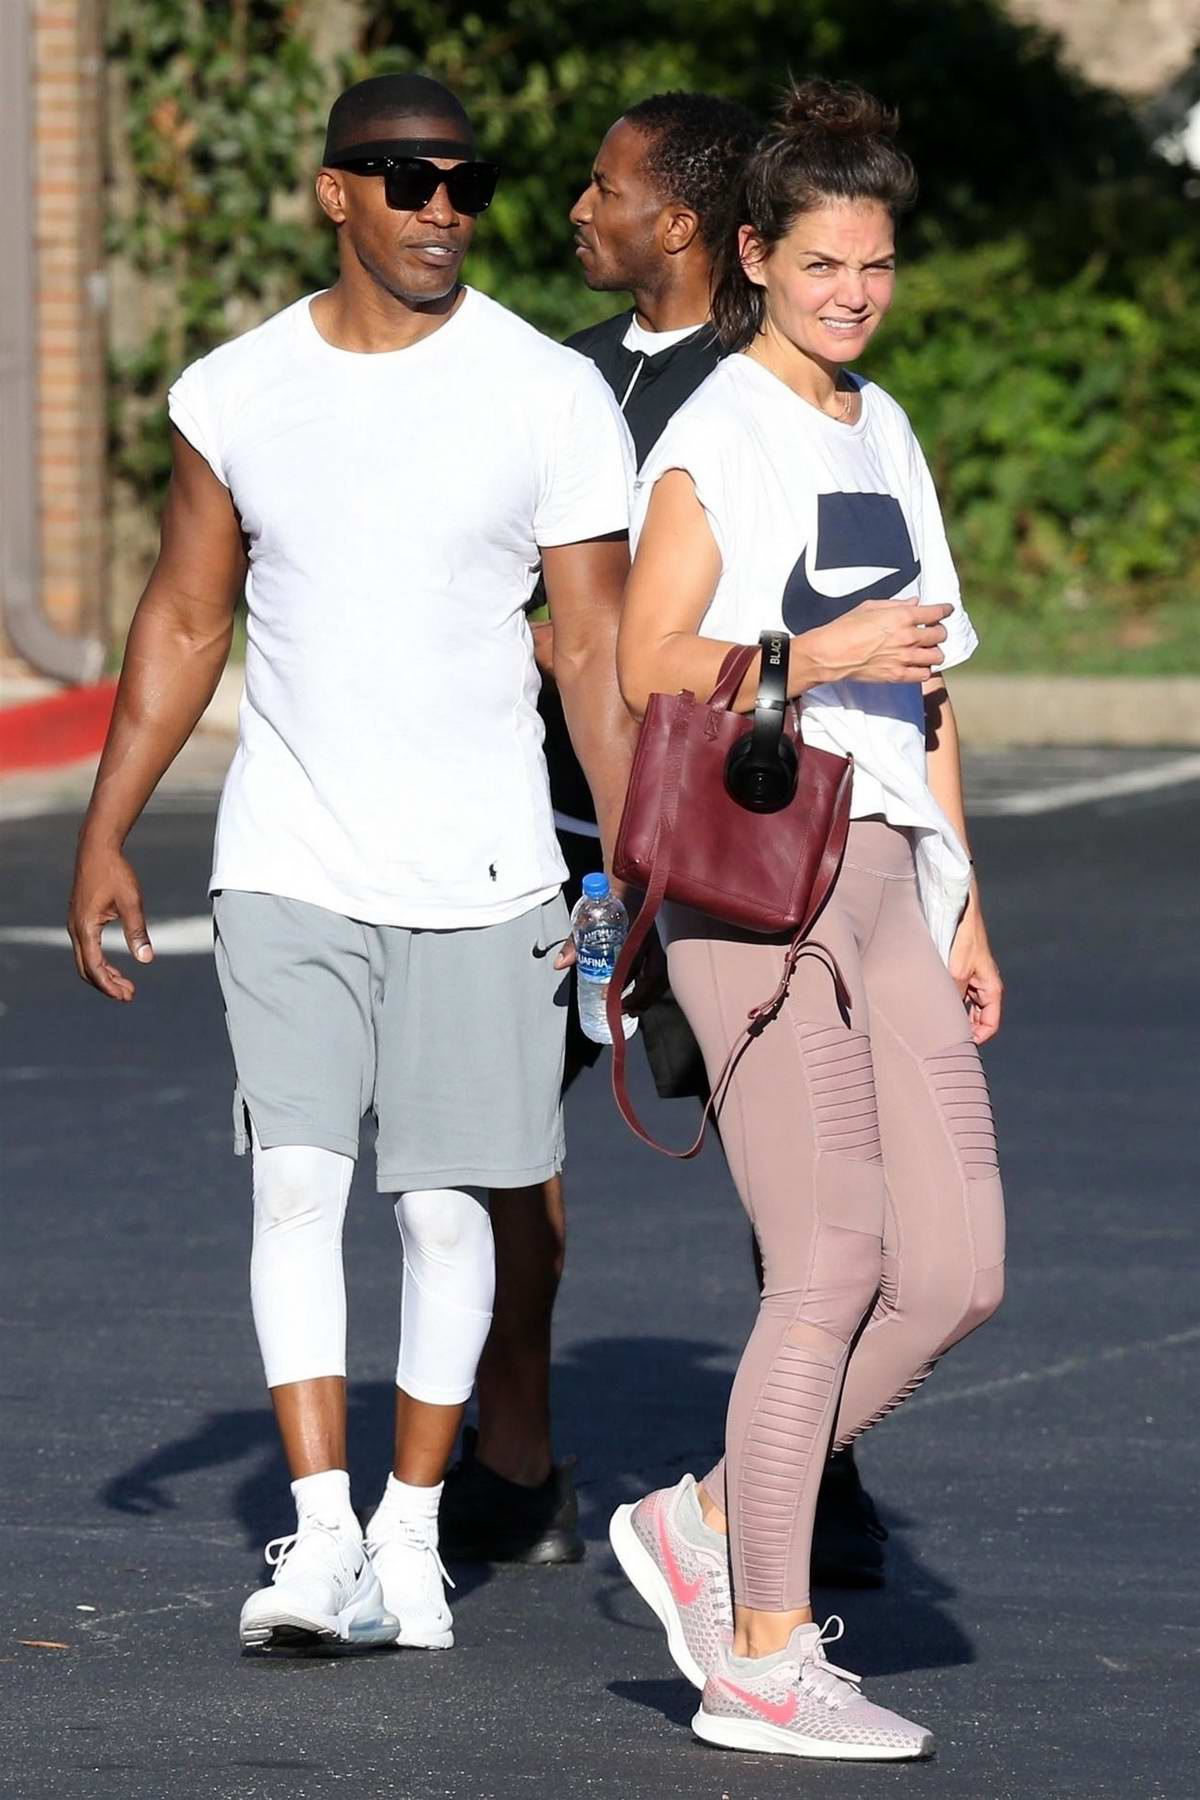 Katie Holmes and Jamie foxx spotted leaving the gym in Atlanta, Georgia